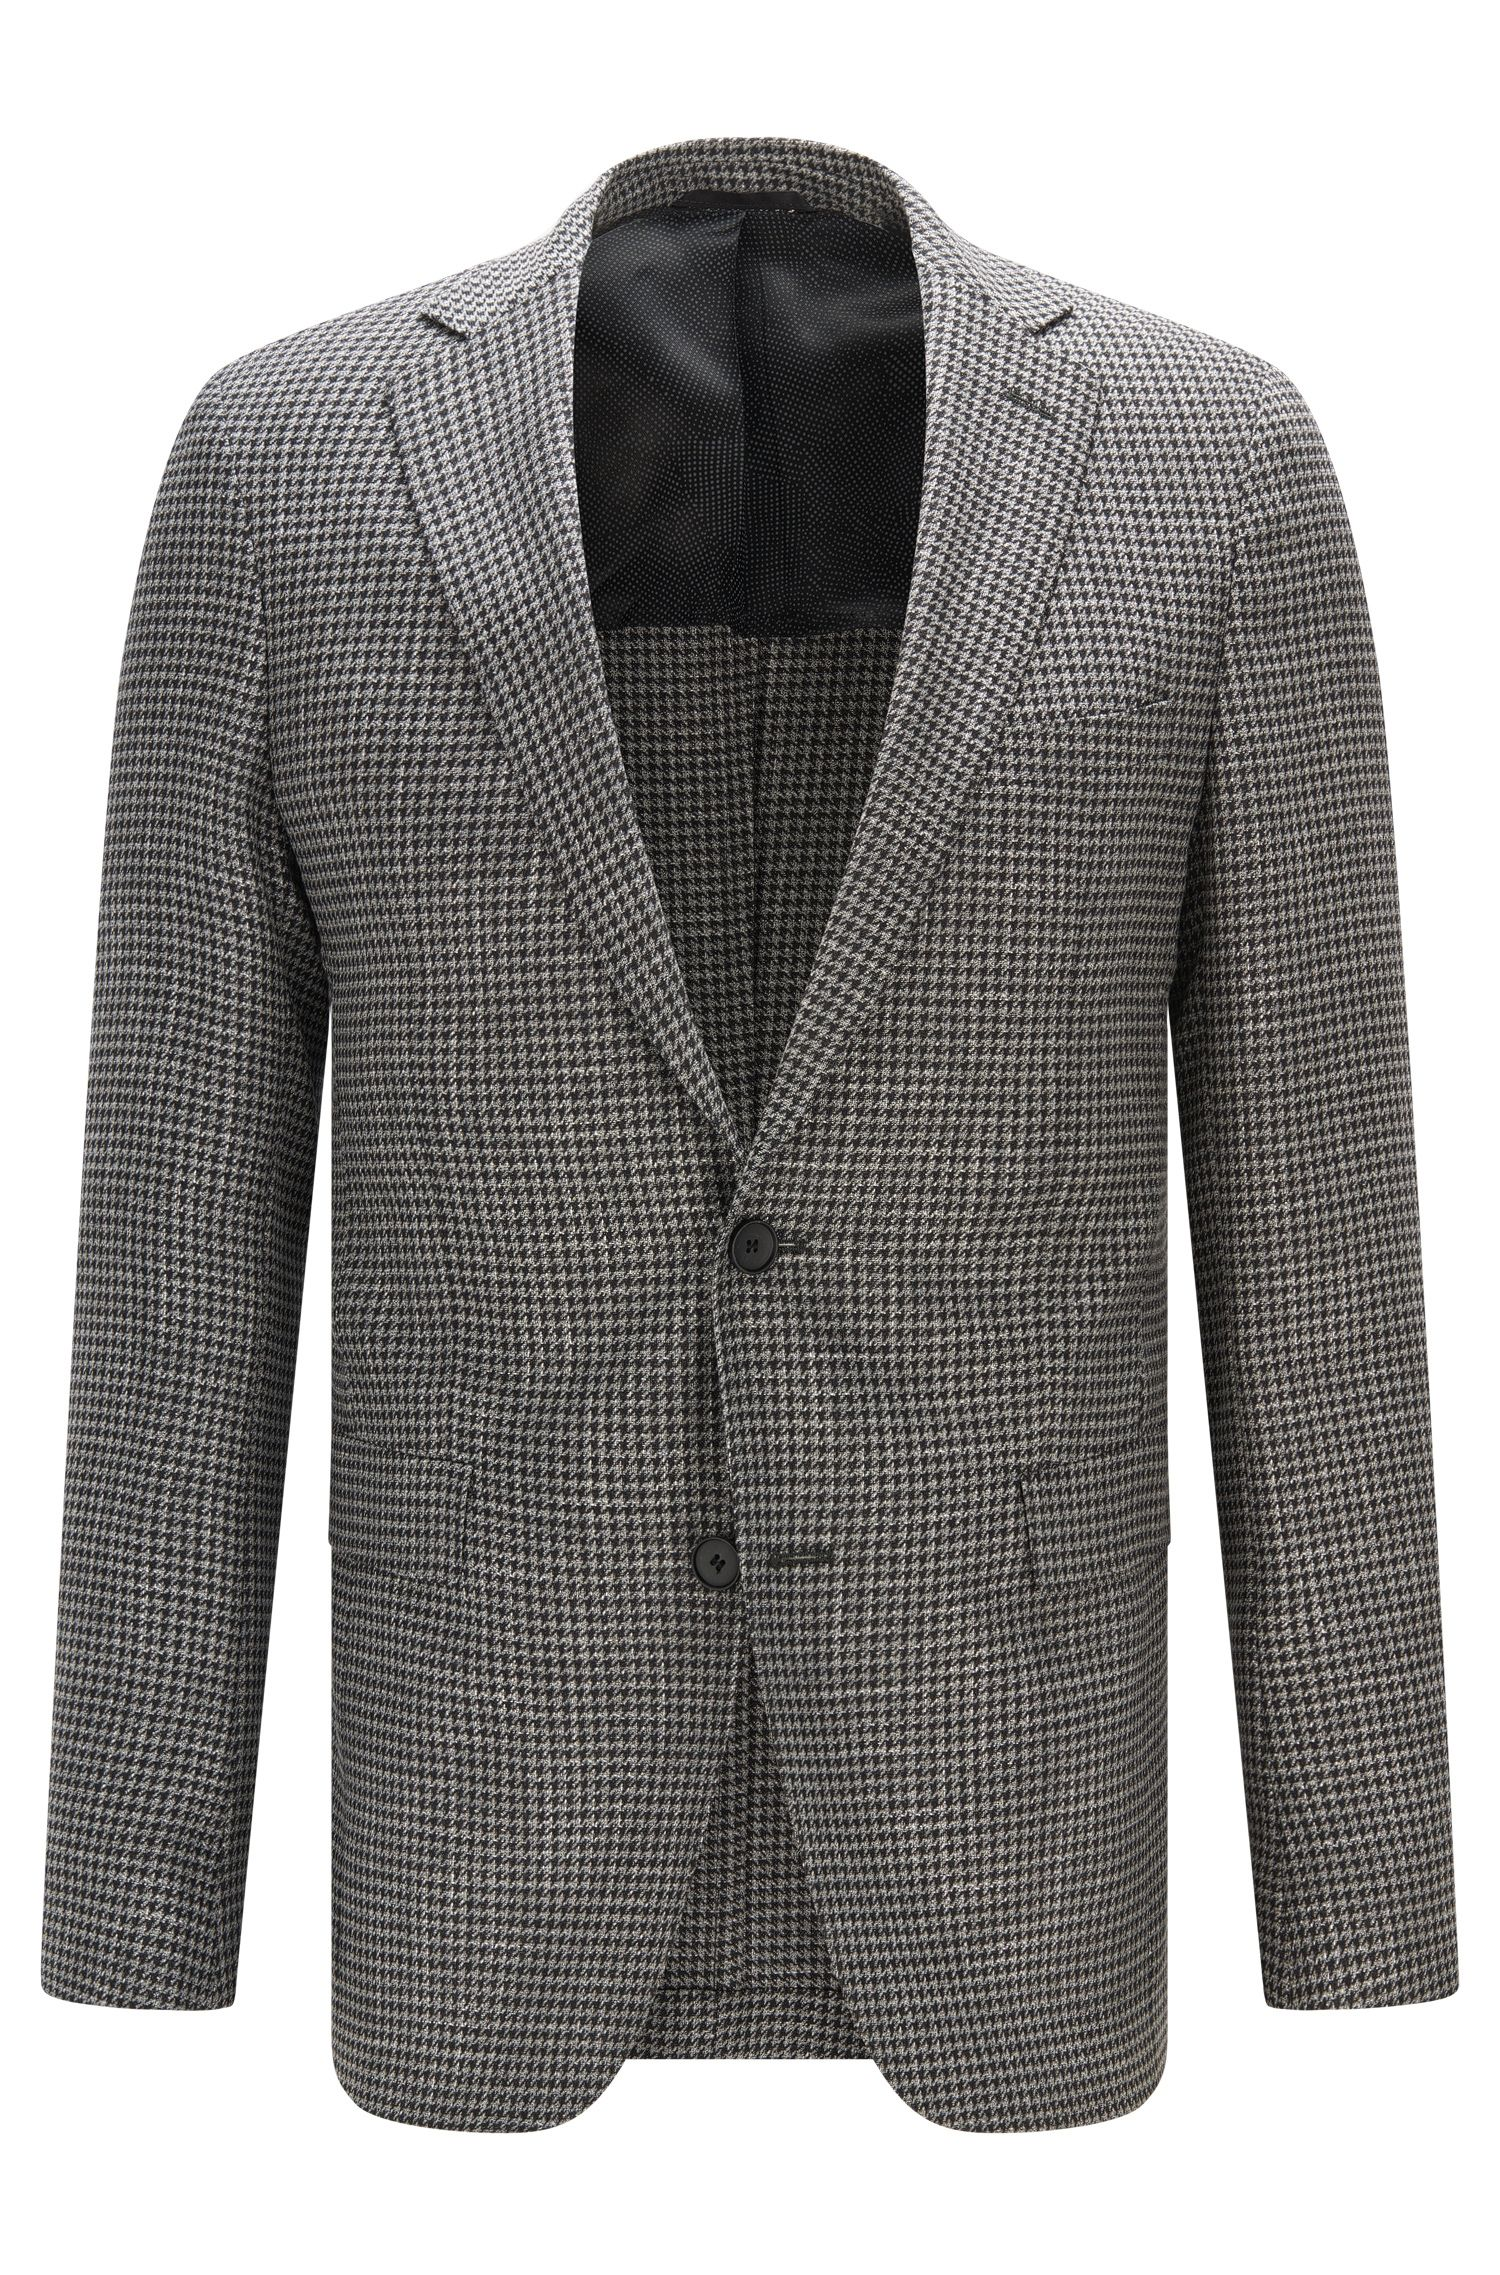 Houndstooth Stretch Virgin Wool Sport Coat, Extra Slim Fit | Roan